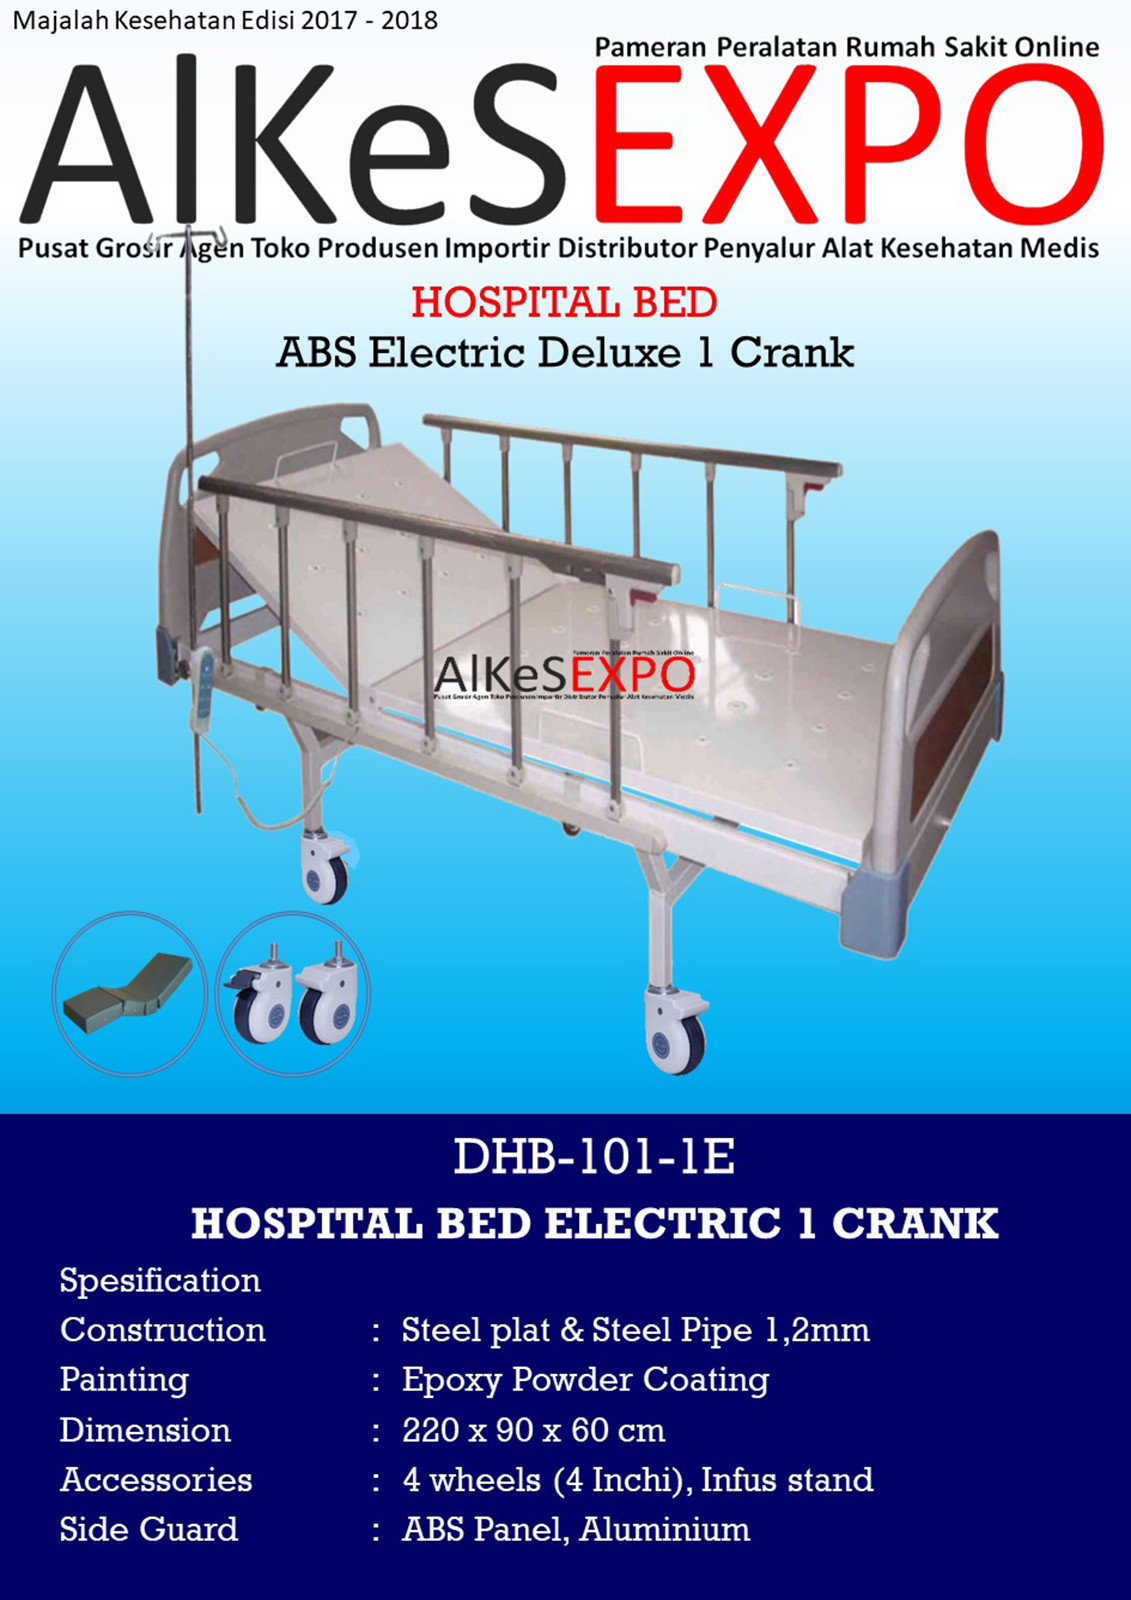 Hospital Bed Electric 1 Crank DHB-101-1E